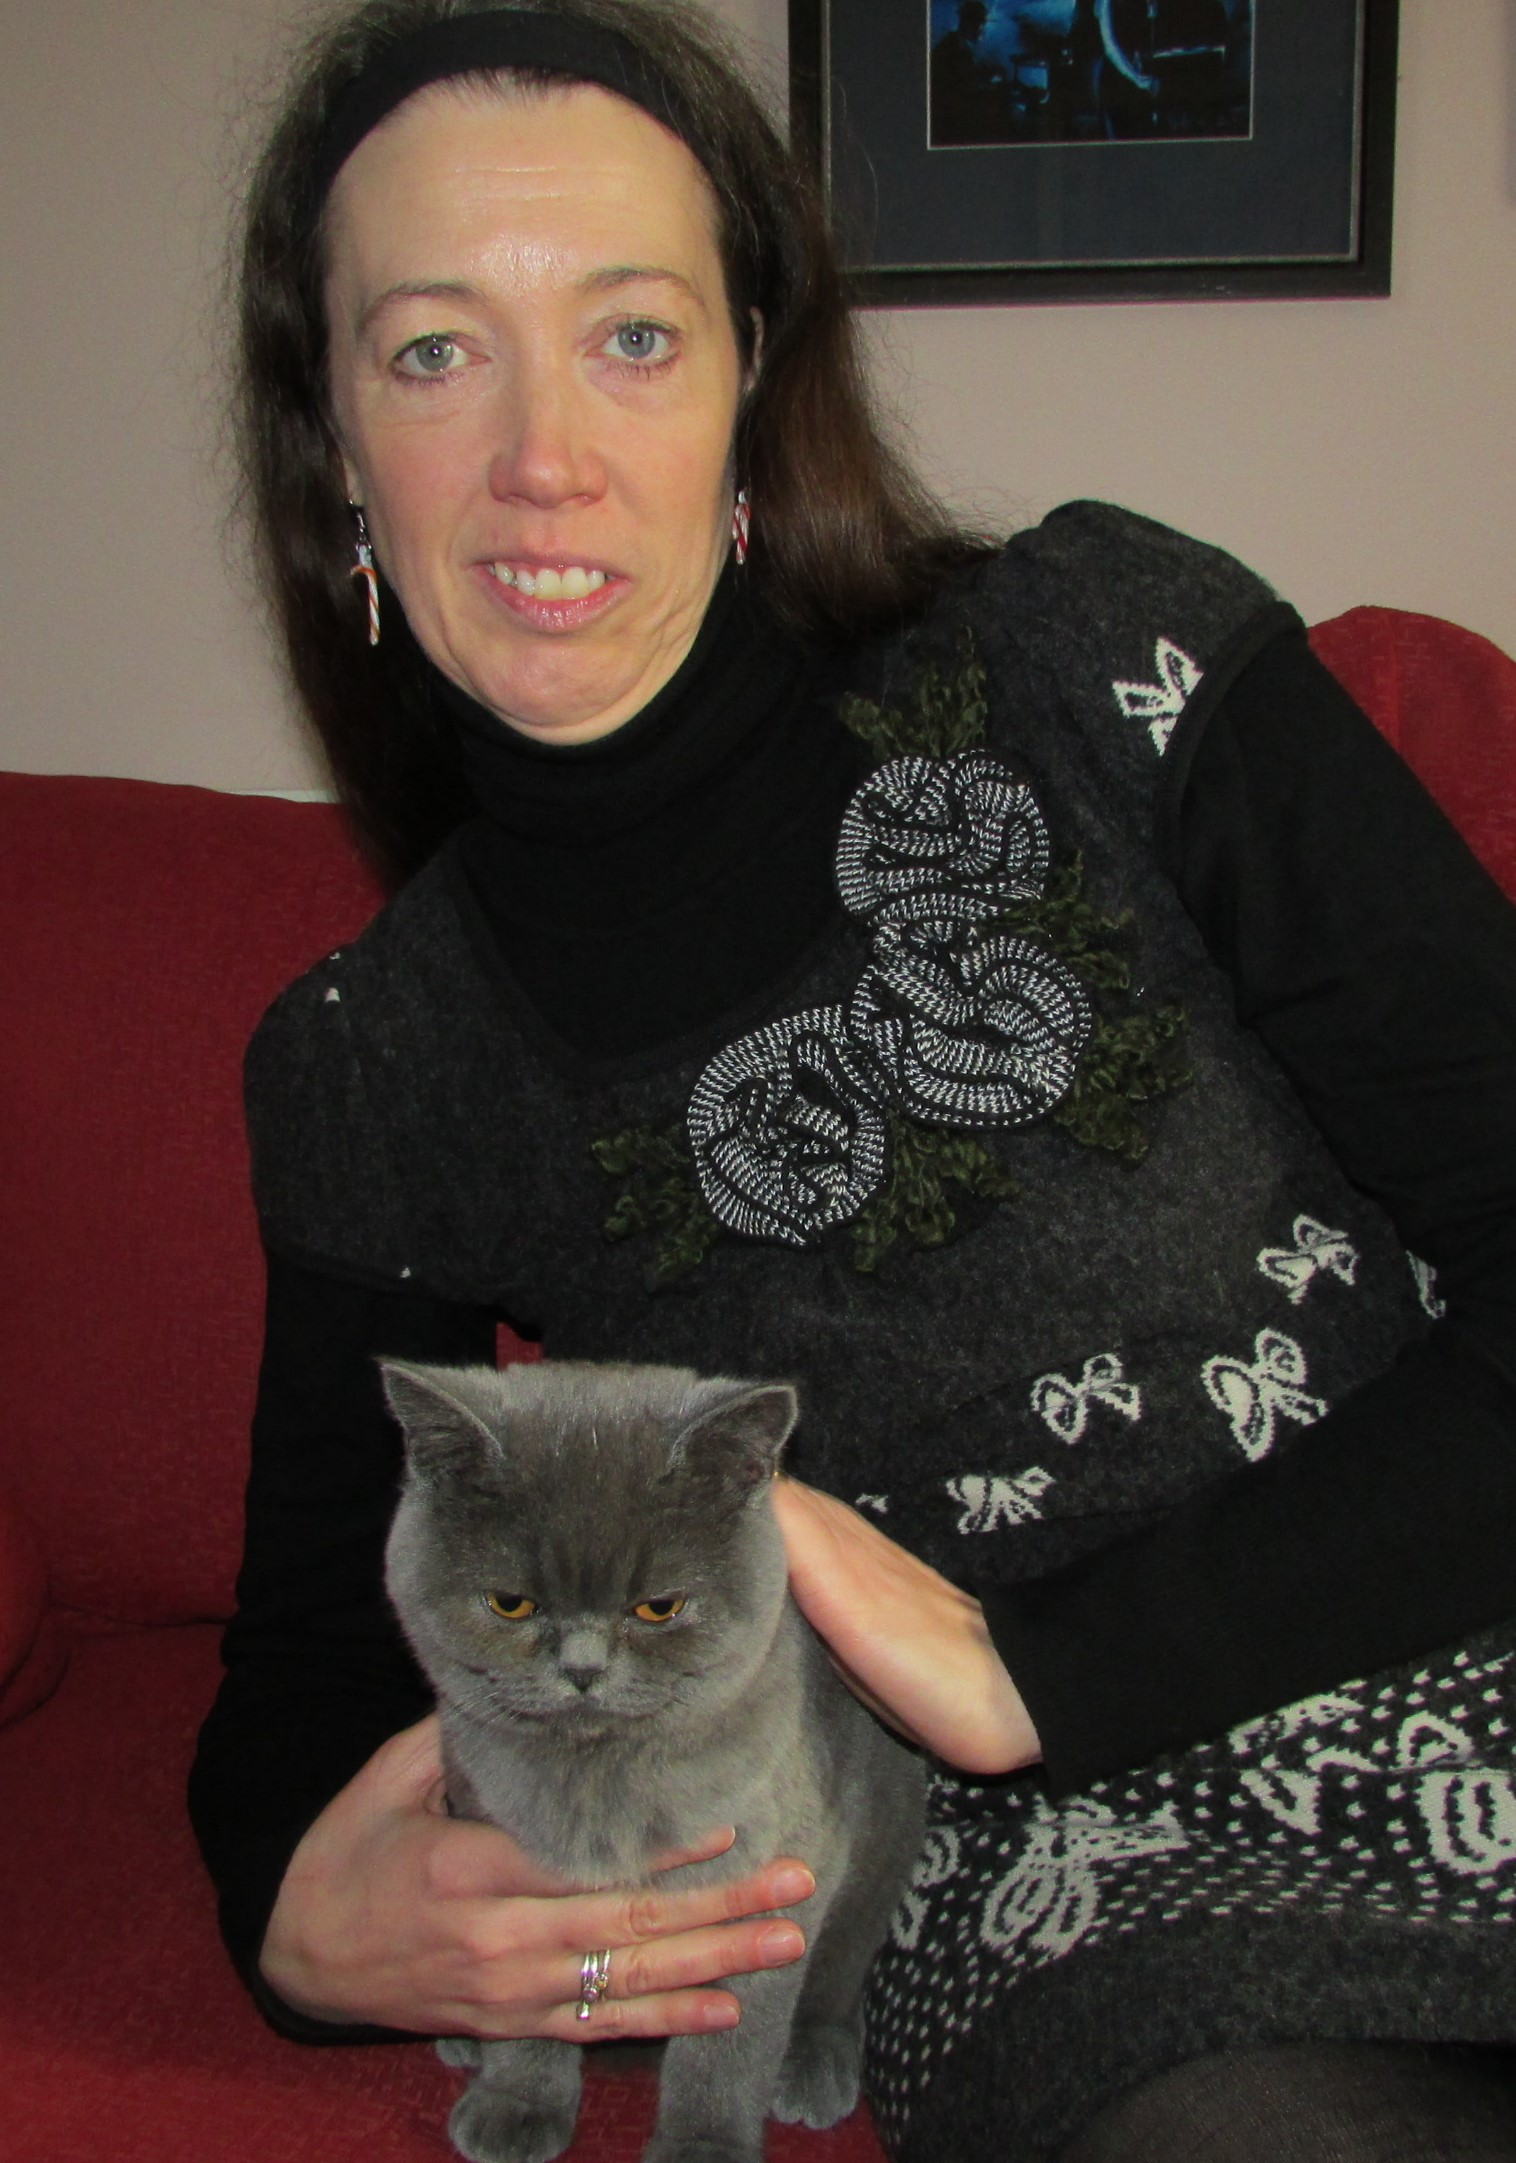 Myself and Bessie, our CEO (Cat executive officer) -